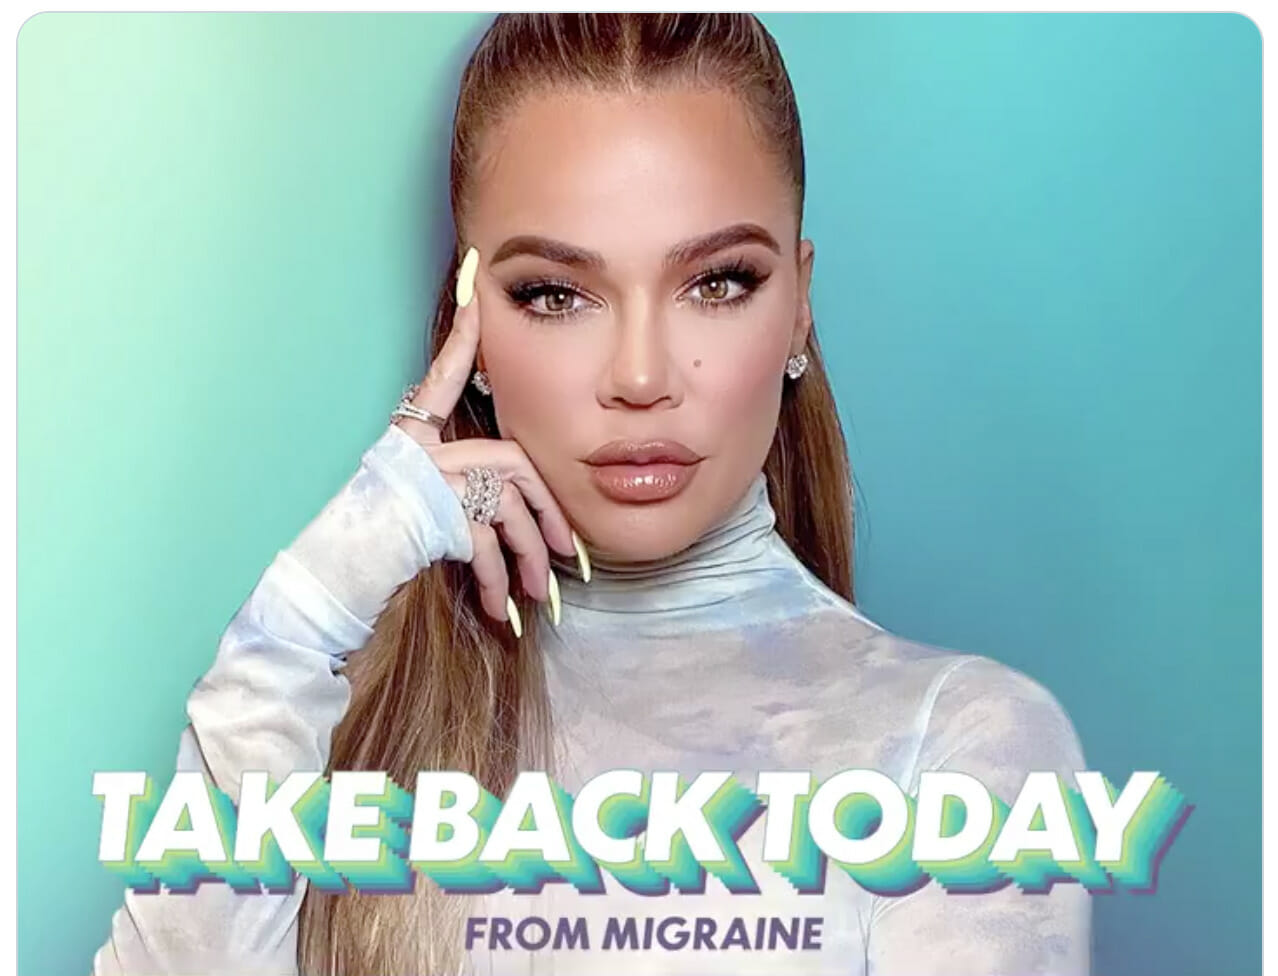 Khloe Kardashian opens up about migraine in Nurtec ODT campaign